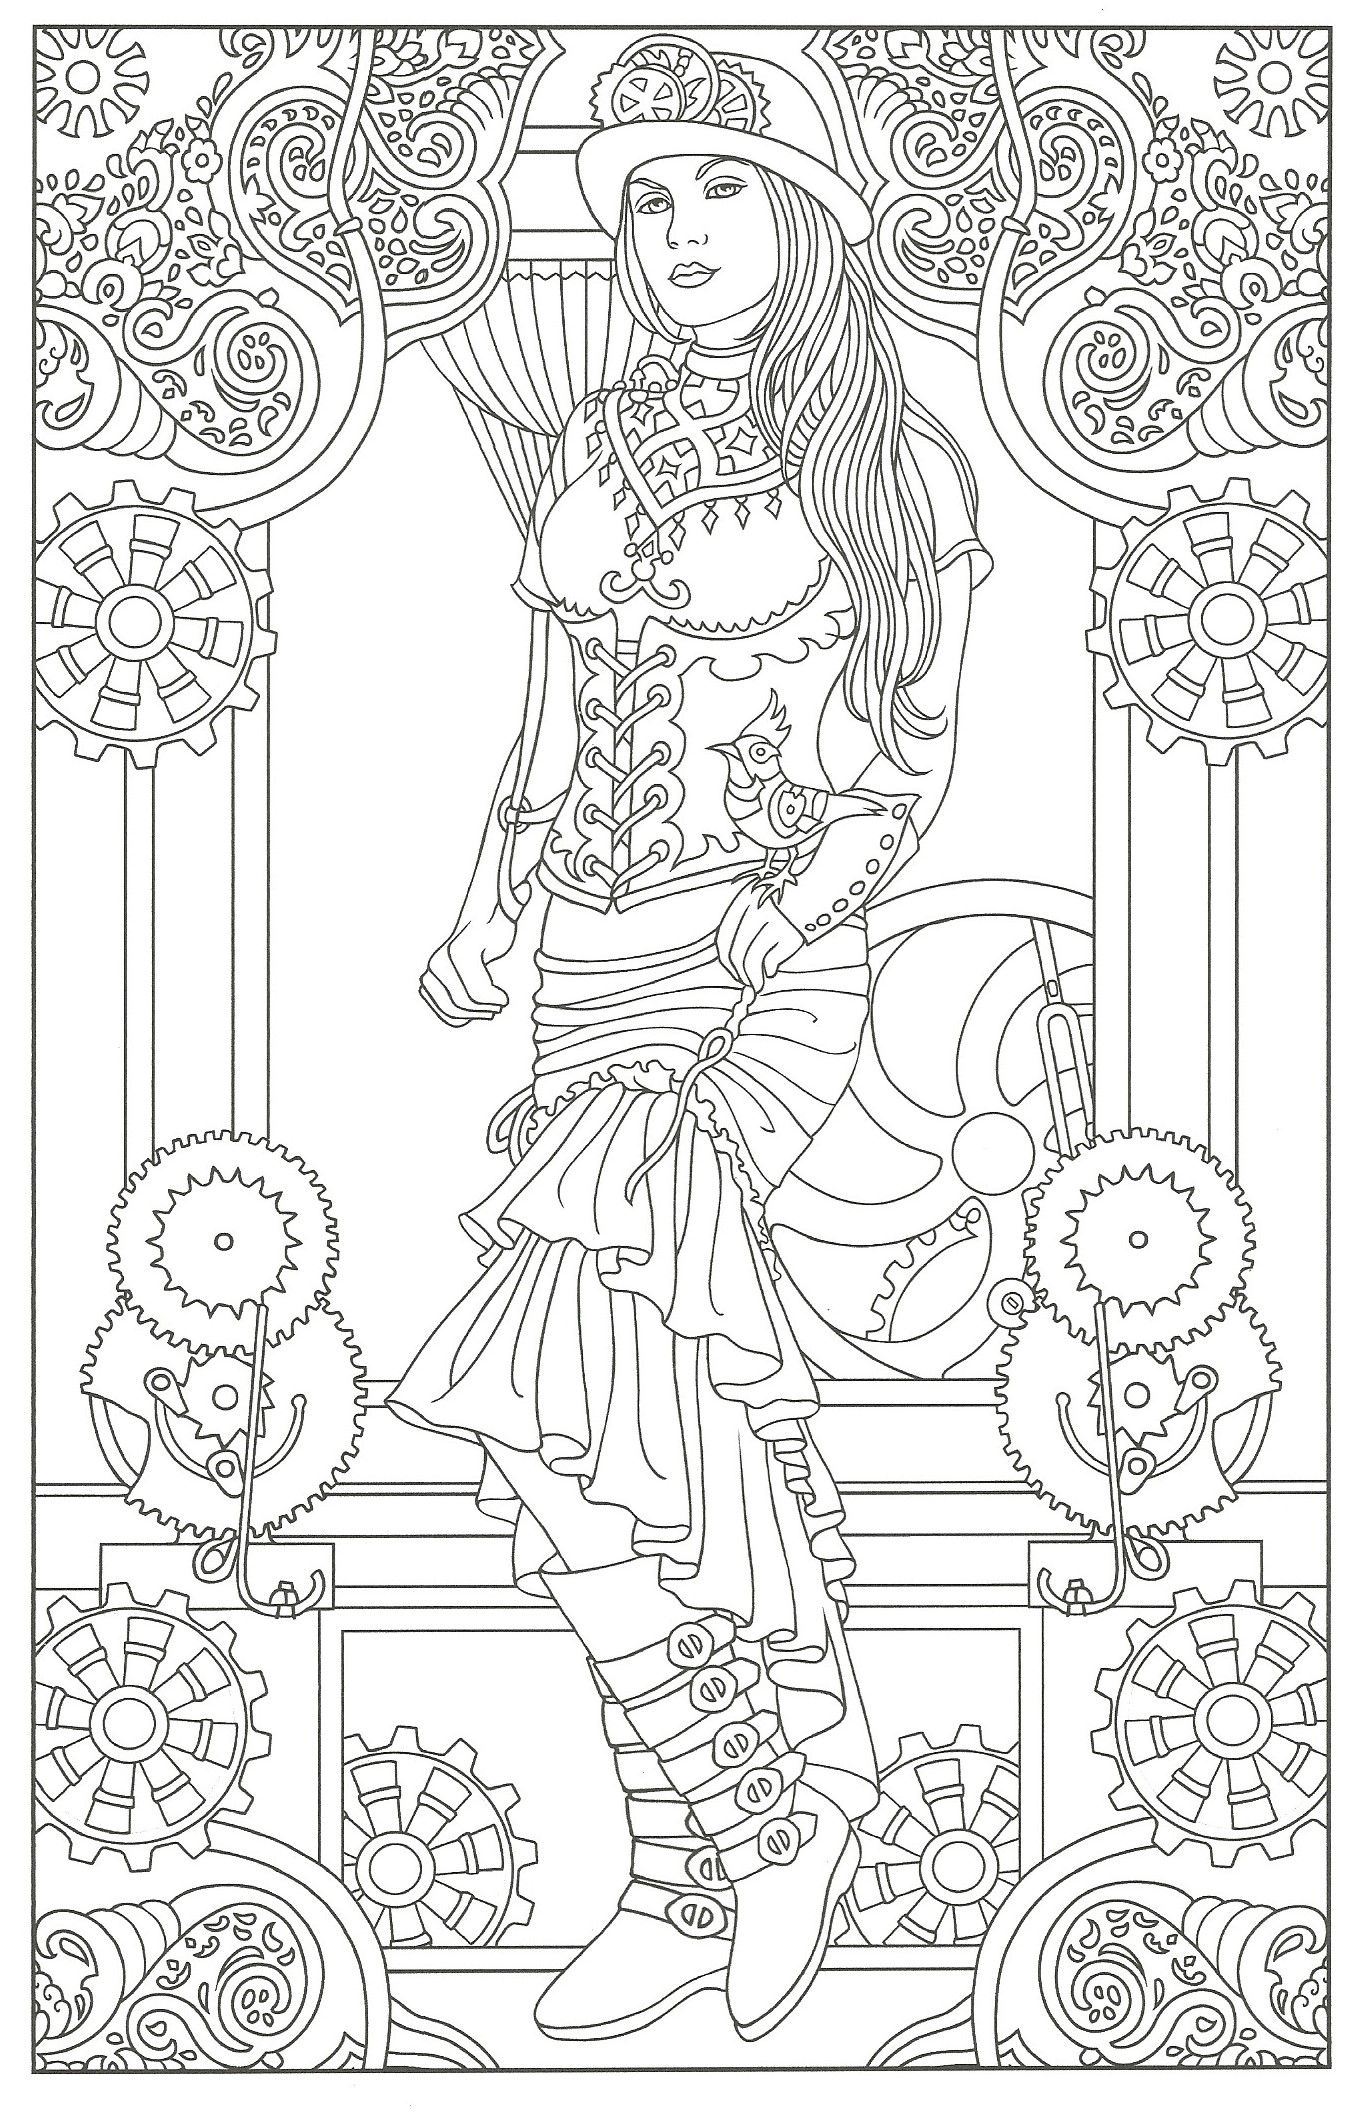 Flower drawings on pinterest dover publications coloring pages and - Creative Haven Steampunk Fashions Coloring Book Dover Publications Davlin Publishing